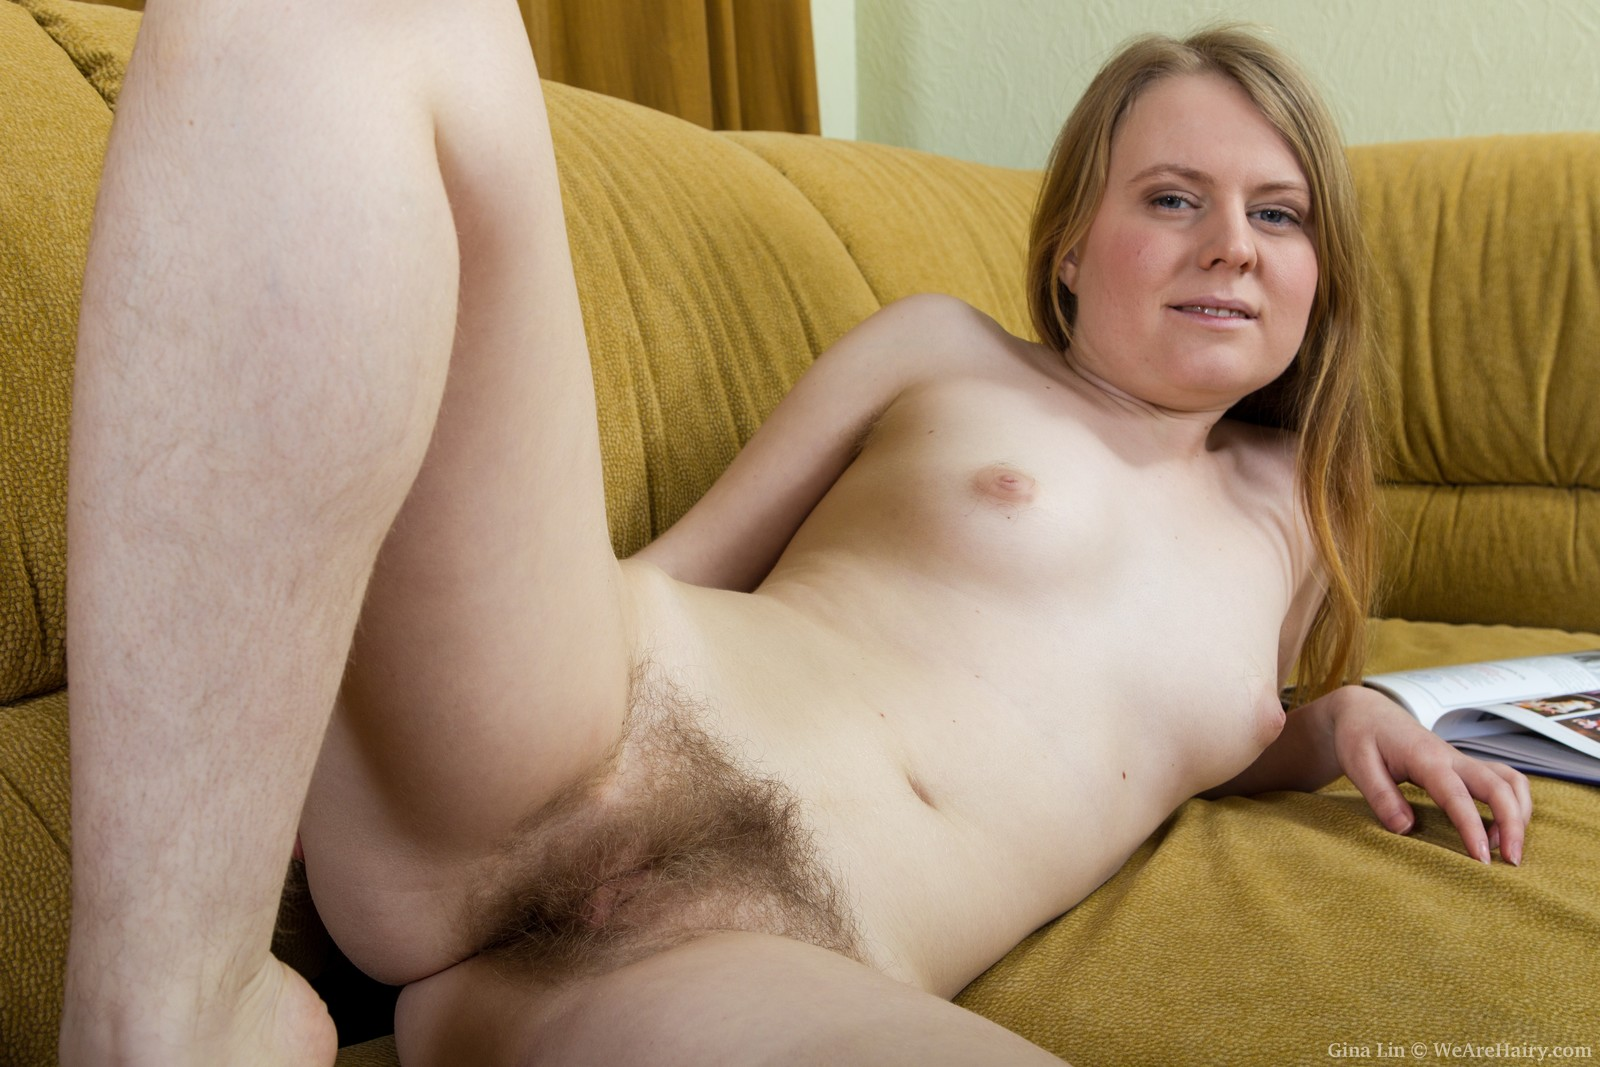 Romanian hairy pussy rather